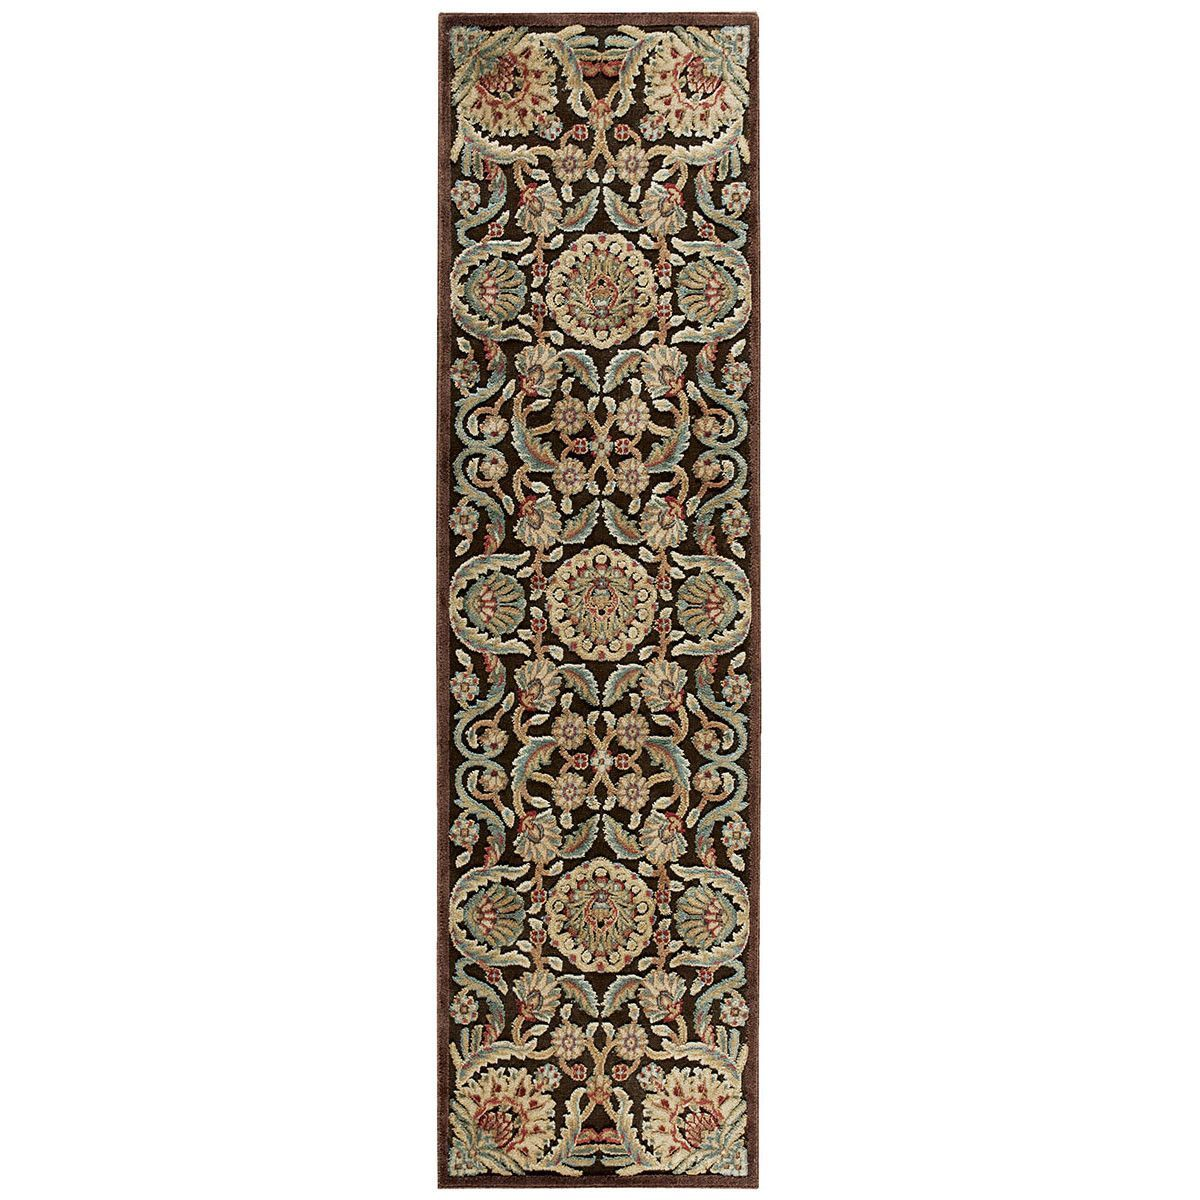 Nourison Graphic Illusions GIL17 Chocolate Area Rug 13265